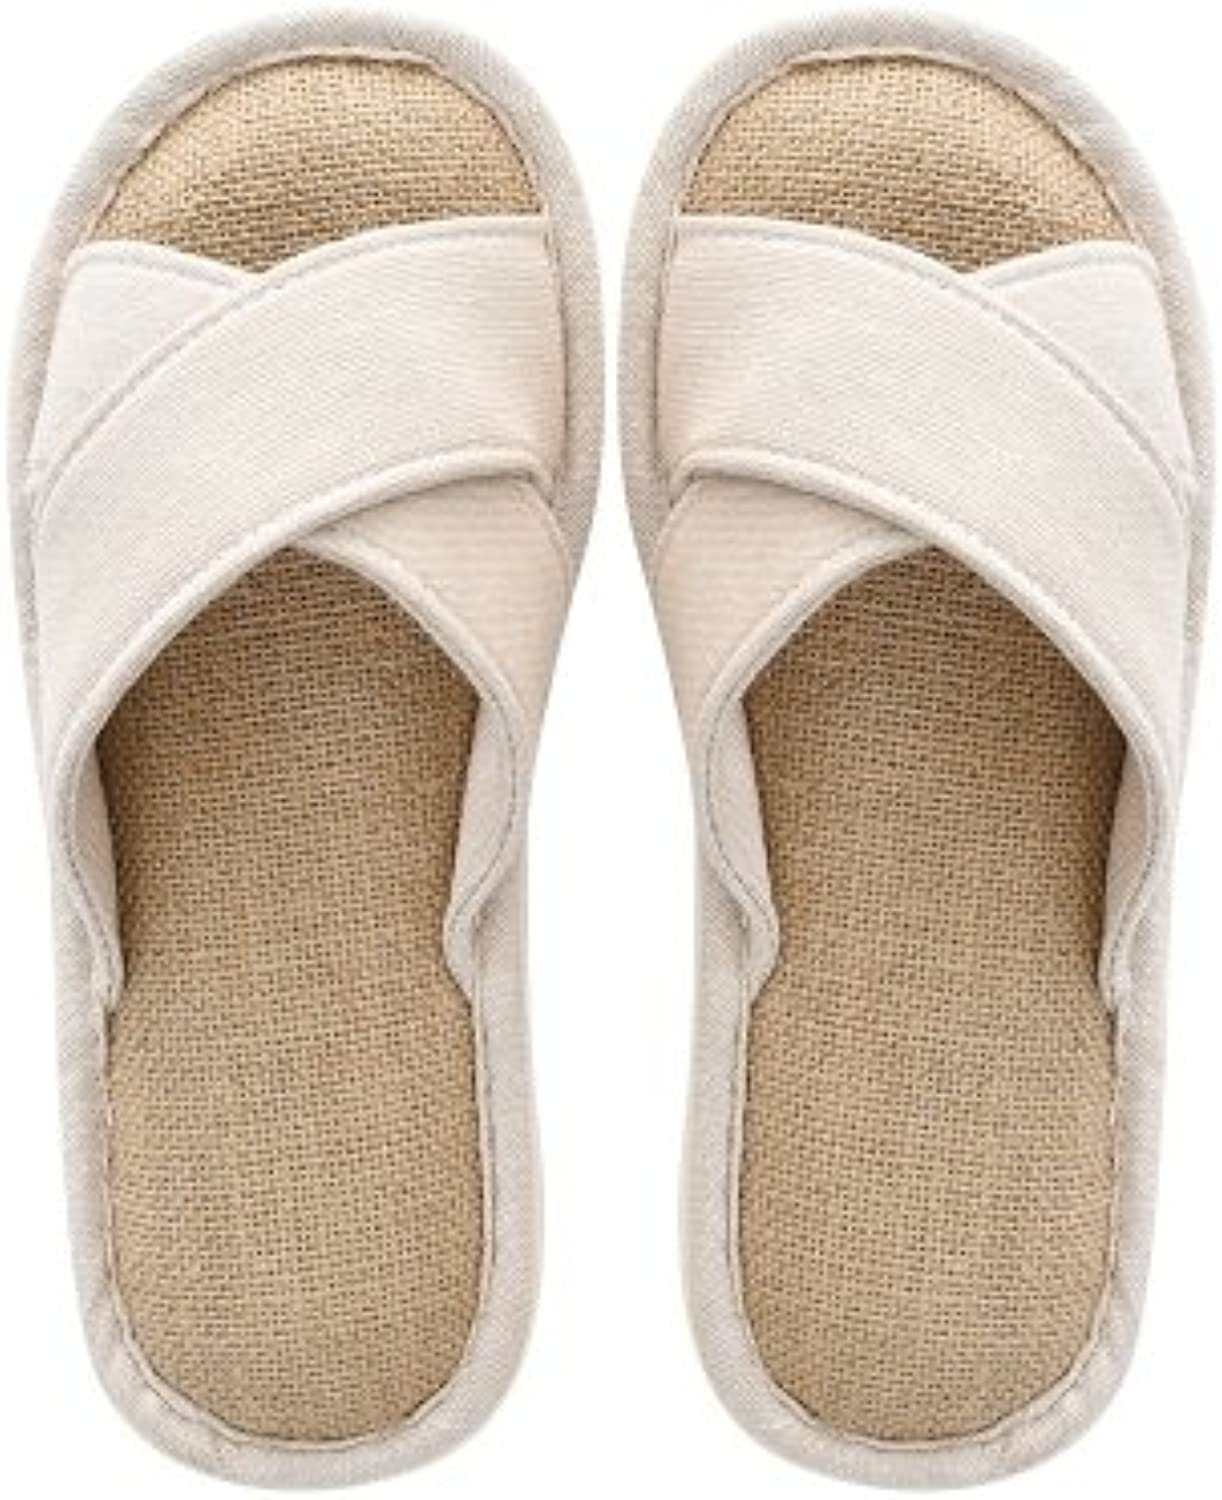 fankou Couple of Cool Summer Linen Slippers for Men and Women Home Bedroom Home Wooden Floor Slippers Thick, Non-Slip...